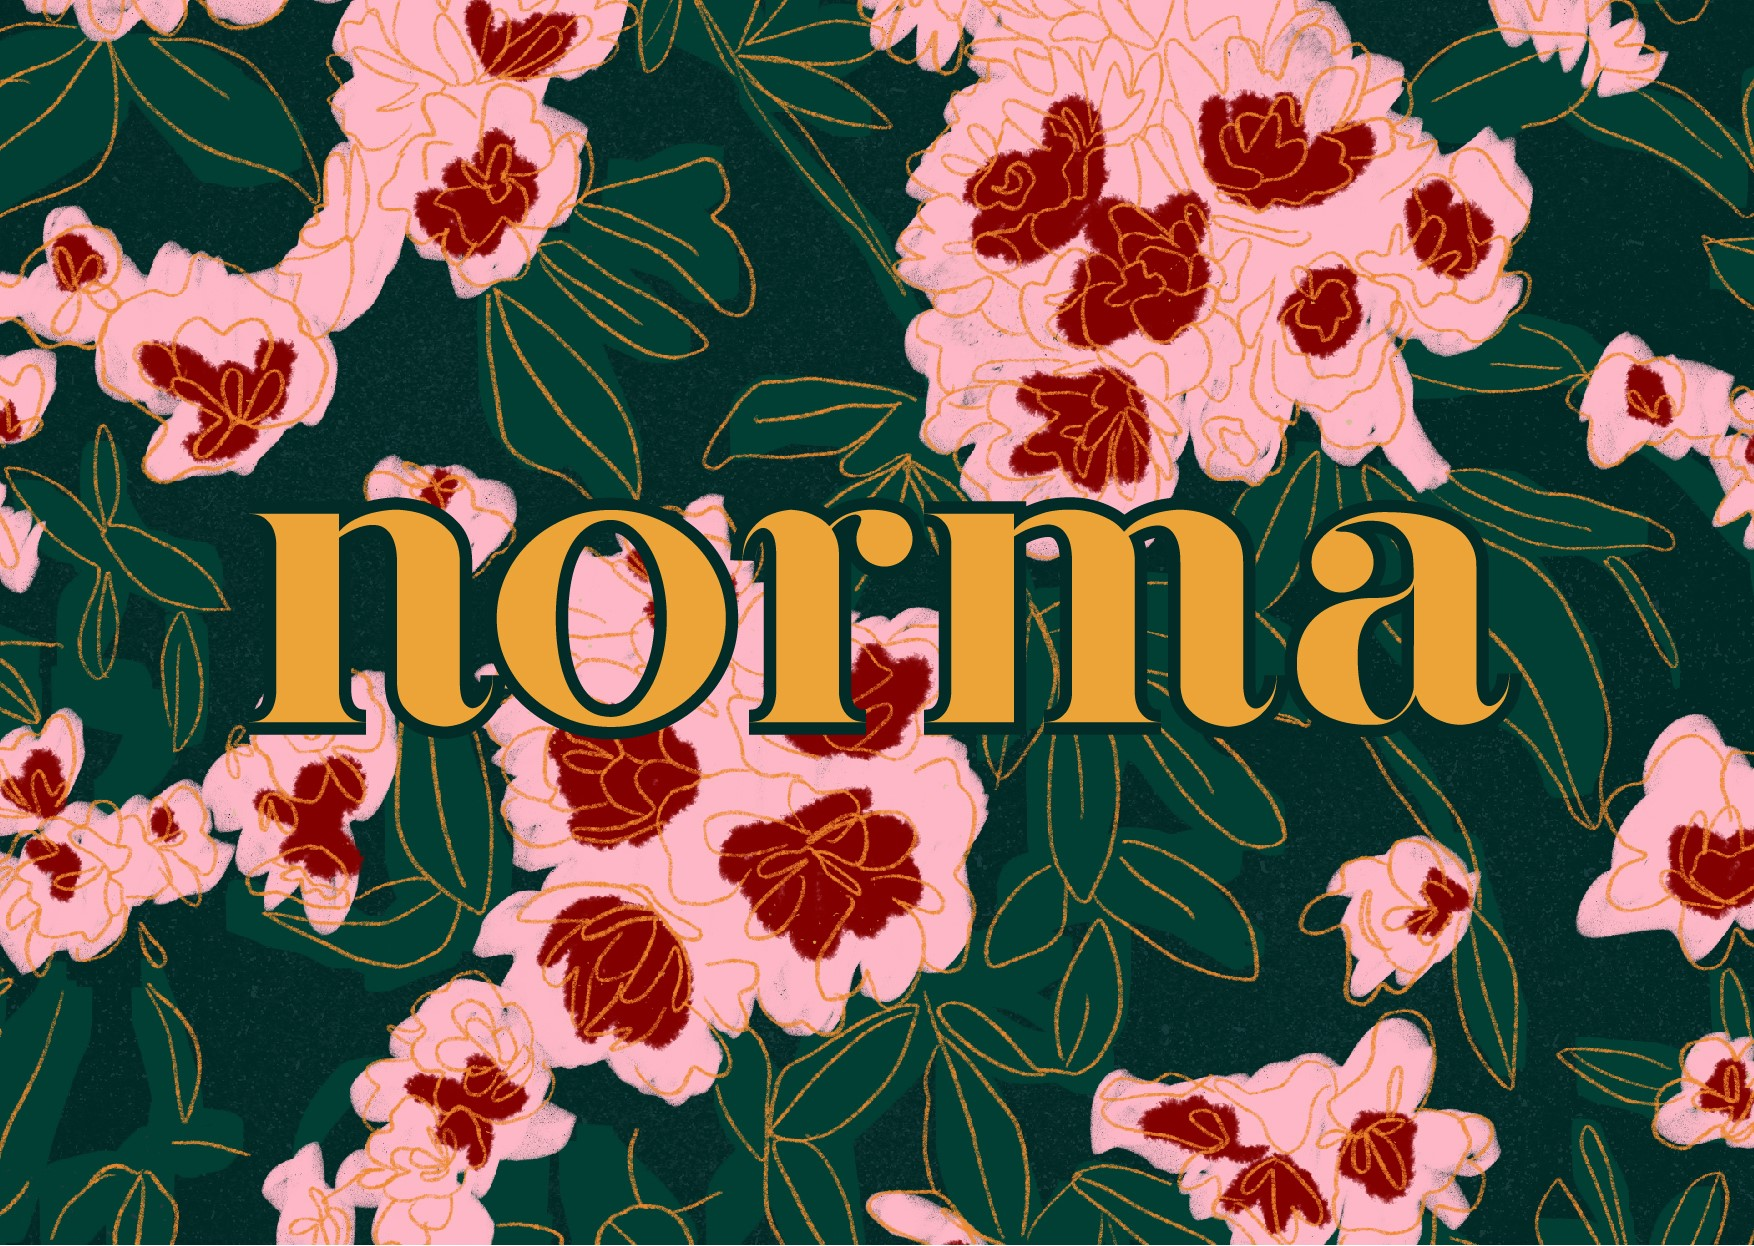 At Norma we want each piece to be an heirloom, a carefully considered purchase. We believe that if you love what you wear you will look after it, wear it often and repair it rather than replace. Let's give fast fashion the finger and take time and care to enjoy clothes that took time and care to create. Beautiful designer dresses for mum and daughter.